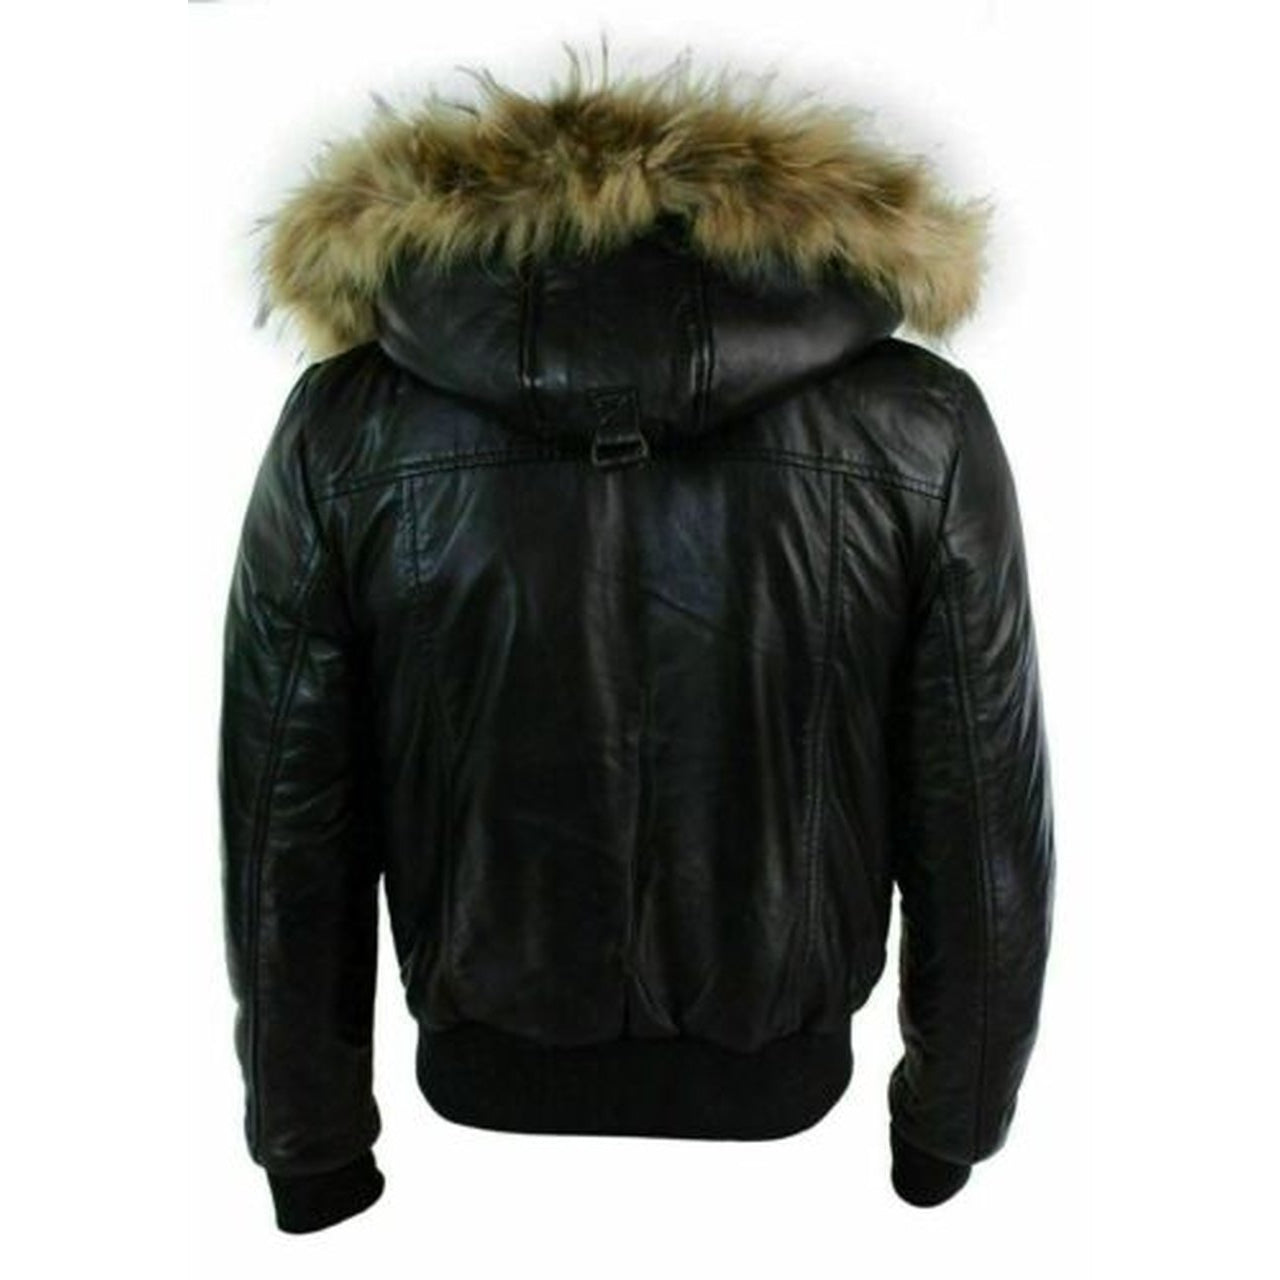 Black Puffer Bomber Hooded Biker Cafe Racer Real Leather Jacket for Men